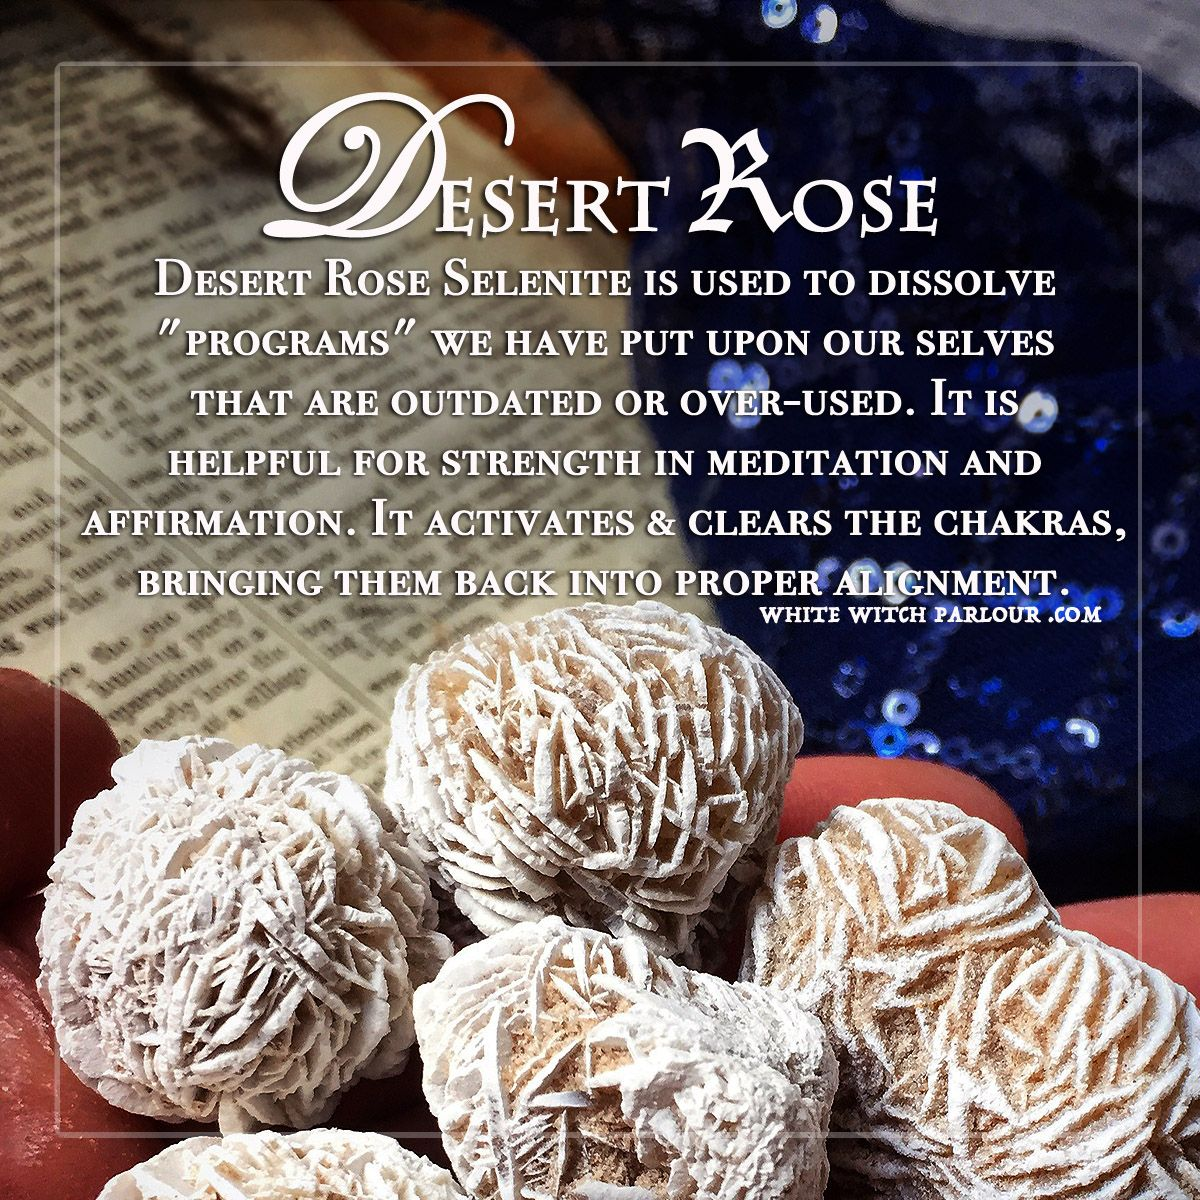 Desert Rose Selenite Raw Crystal Ball For Full Moon Cleansing Chakra Alignment Crystal Healing Stones Crystals Crystal Therapy Usato who found hope in another world thought that, but the reality was different. desert rose selenite raw crystal ball